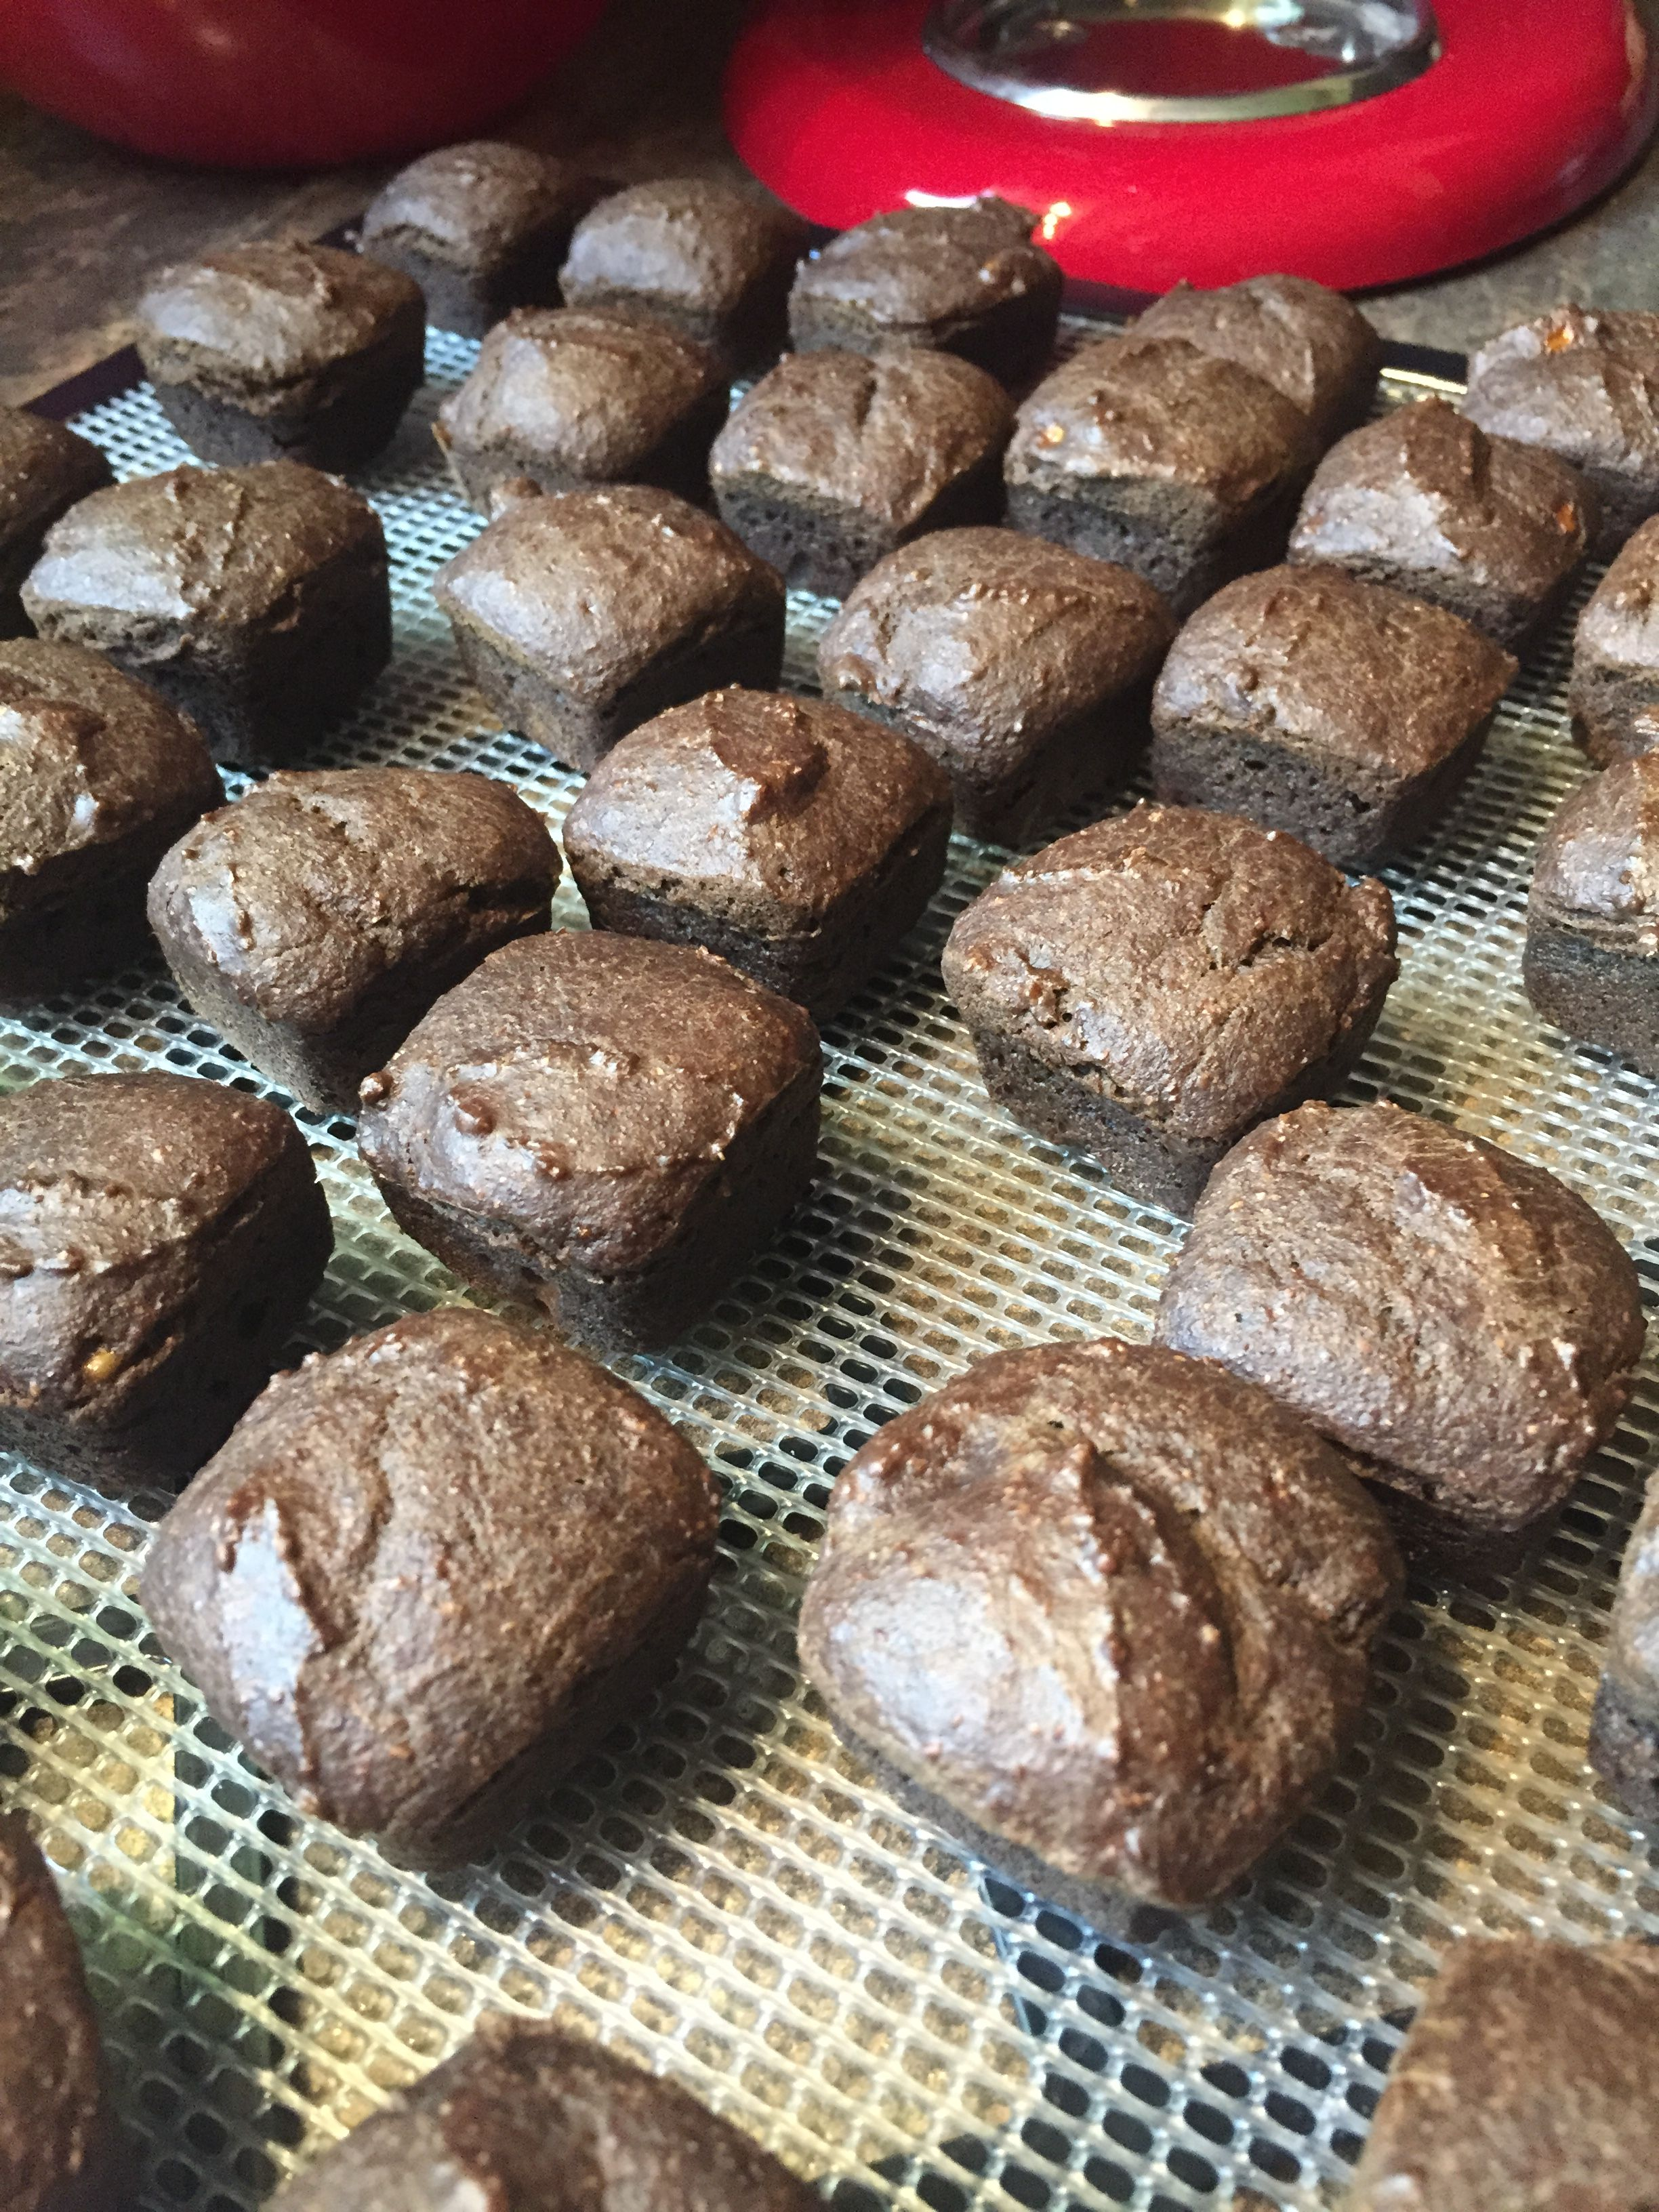 Baking FRENZY continues at the Barkery as the undecorated Peanut Butter Banana Brown Doggie Brownies go in the dehydrator!